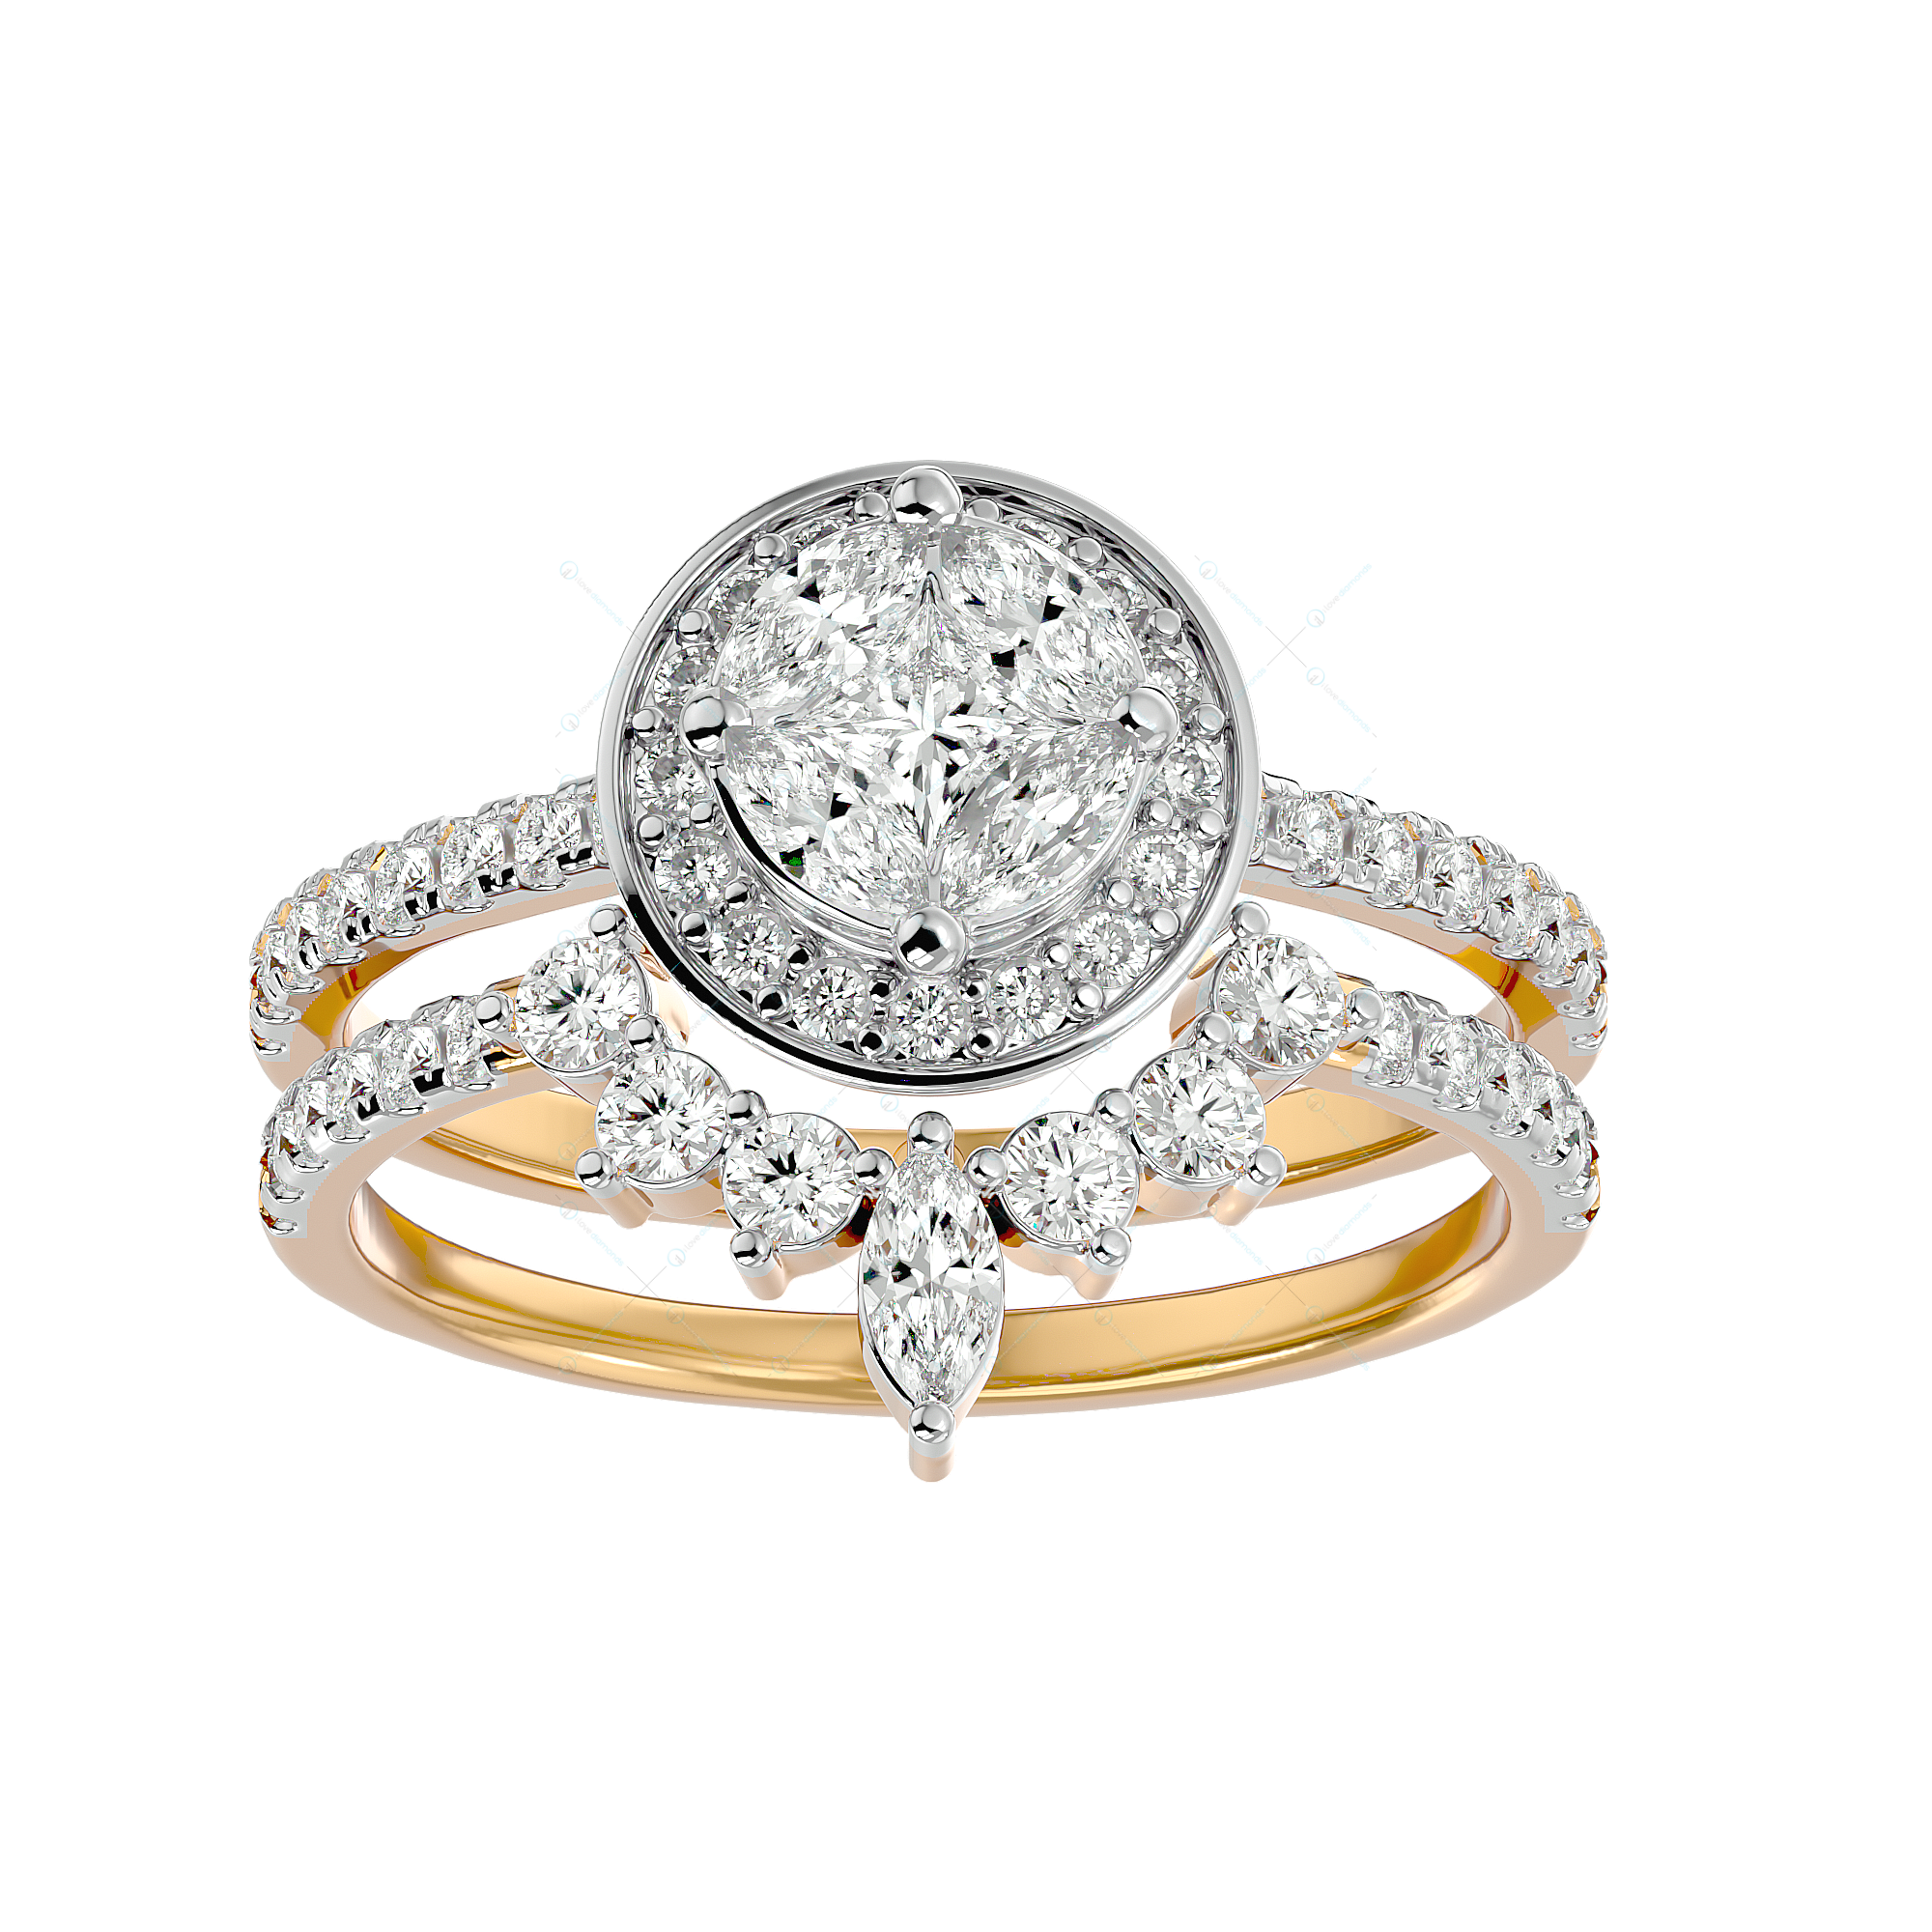 Bountiful Beauty Solitaire Illusion Diamond Ring in Yellow Gold for Women v2